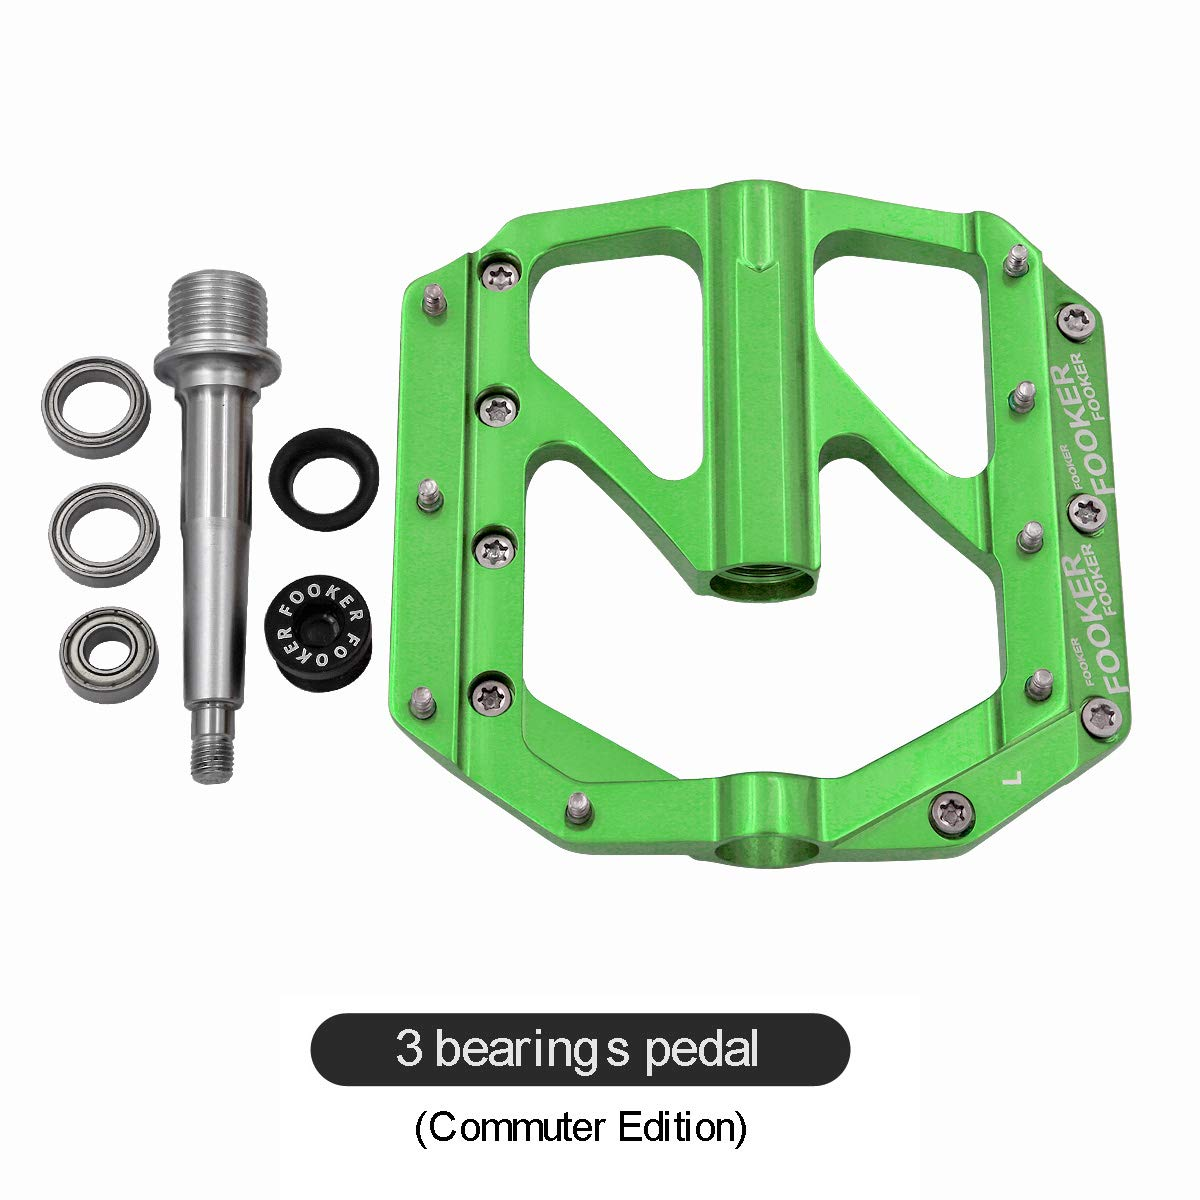 FOOKER Bike Pedals Non-Slip Aluminum Alloy MTB Mountain Bike Pedals 3 Bearing 9/16'' for Road BMX MTB Fixie Bikes by FOOKER (Image #8)